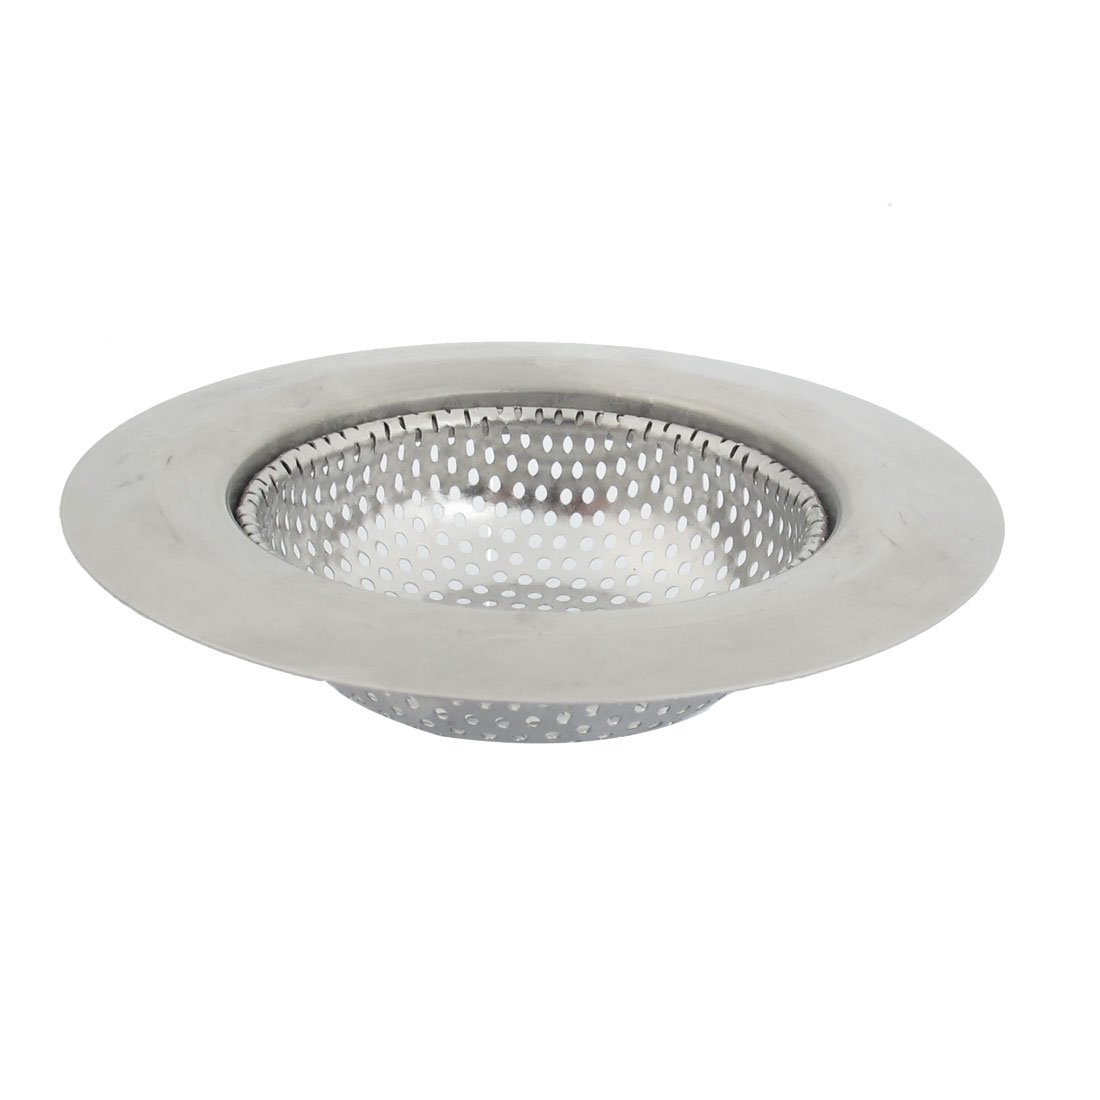 FJS Wholesale Perforated Mesh Design Floor Sink Drain Strainer 4.3 Inch Top Dia<br><br>Aliexpress